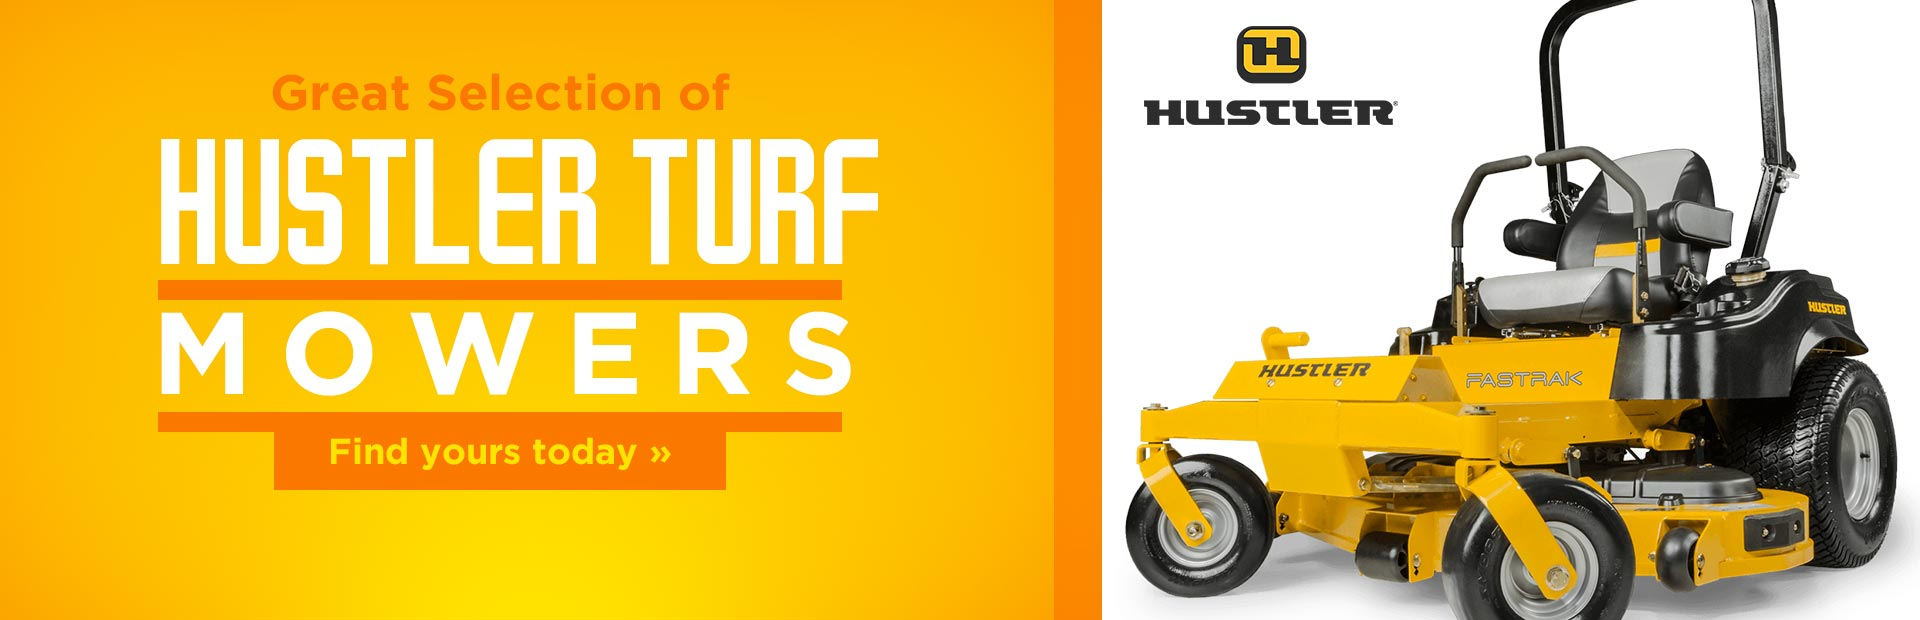 Hustler Turf Mowers: Click here to view our selection!